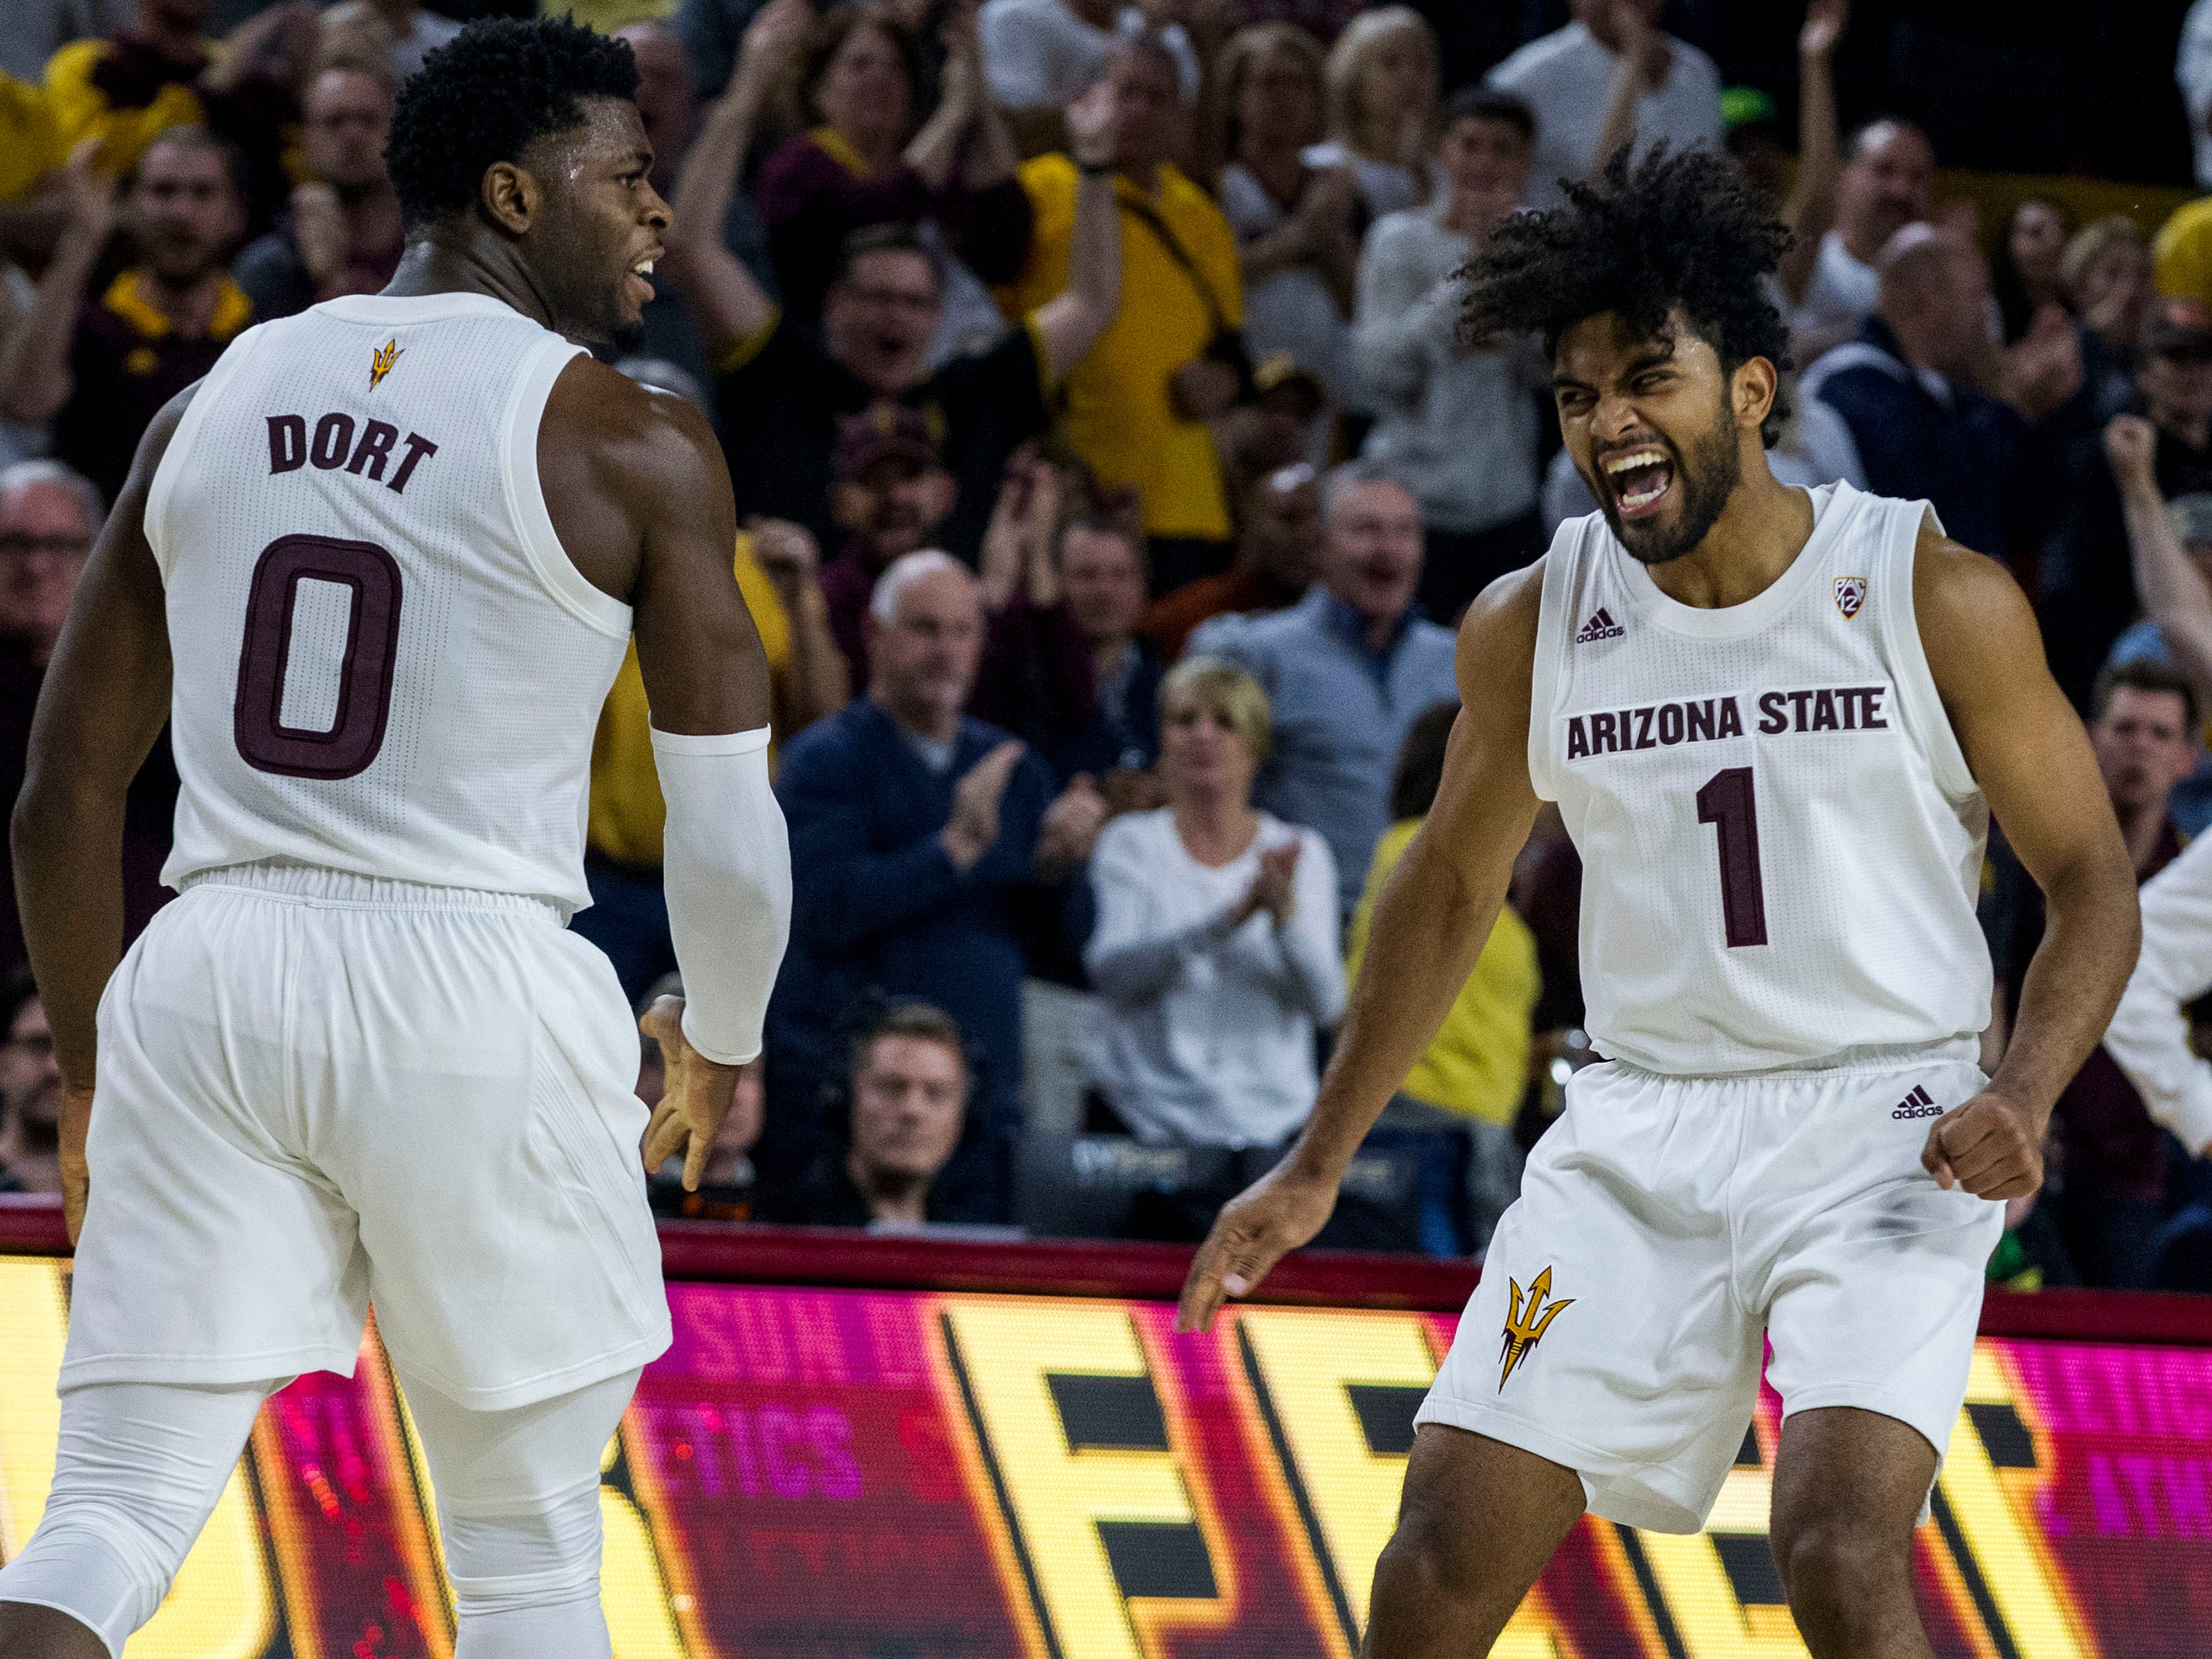 Arizona State's Luguentz Dort (0) and Remy Martin (1) celebrate during the second half against Oregon on Saturday, Jan. 19, 2019, in Tempe, Ariz. Arizona State won 78-64. (AP Photo/Darryl Webb)